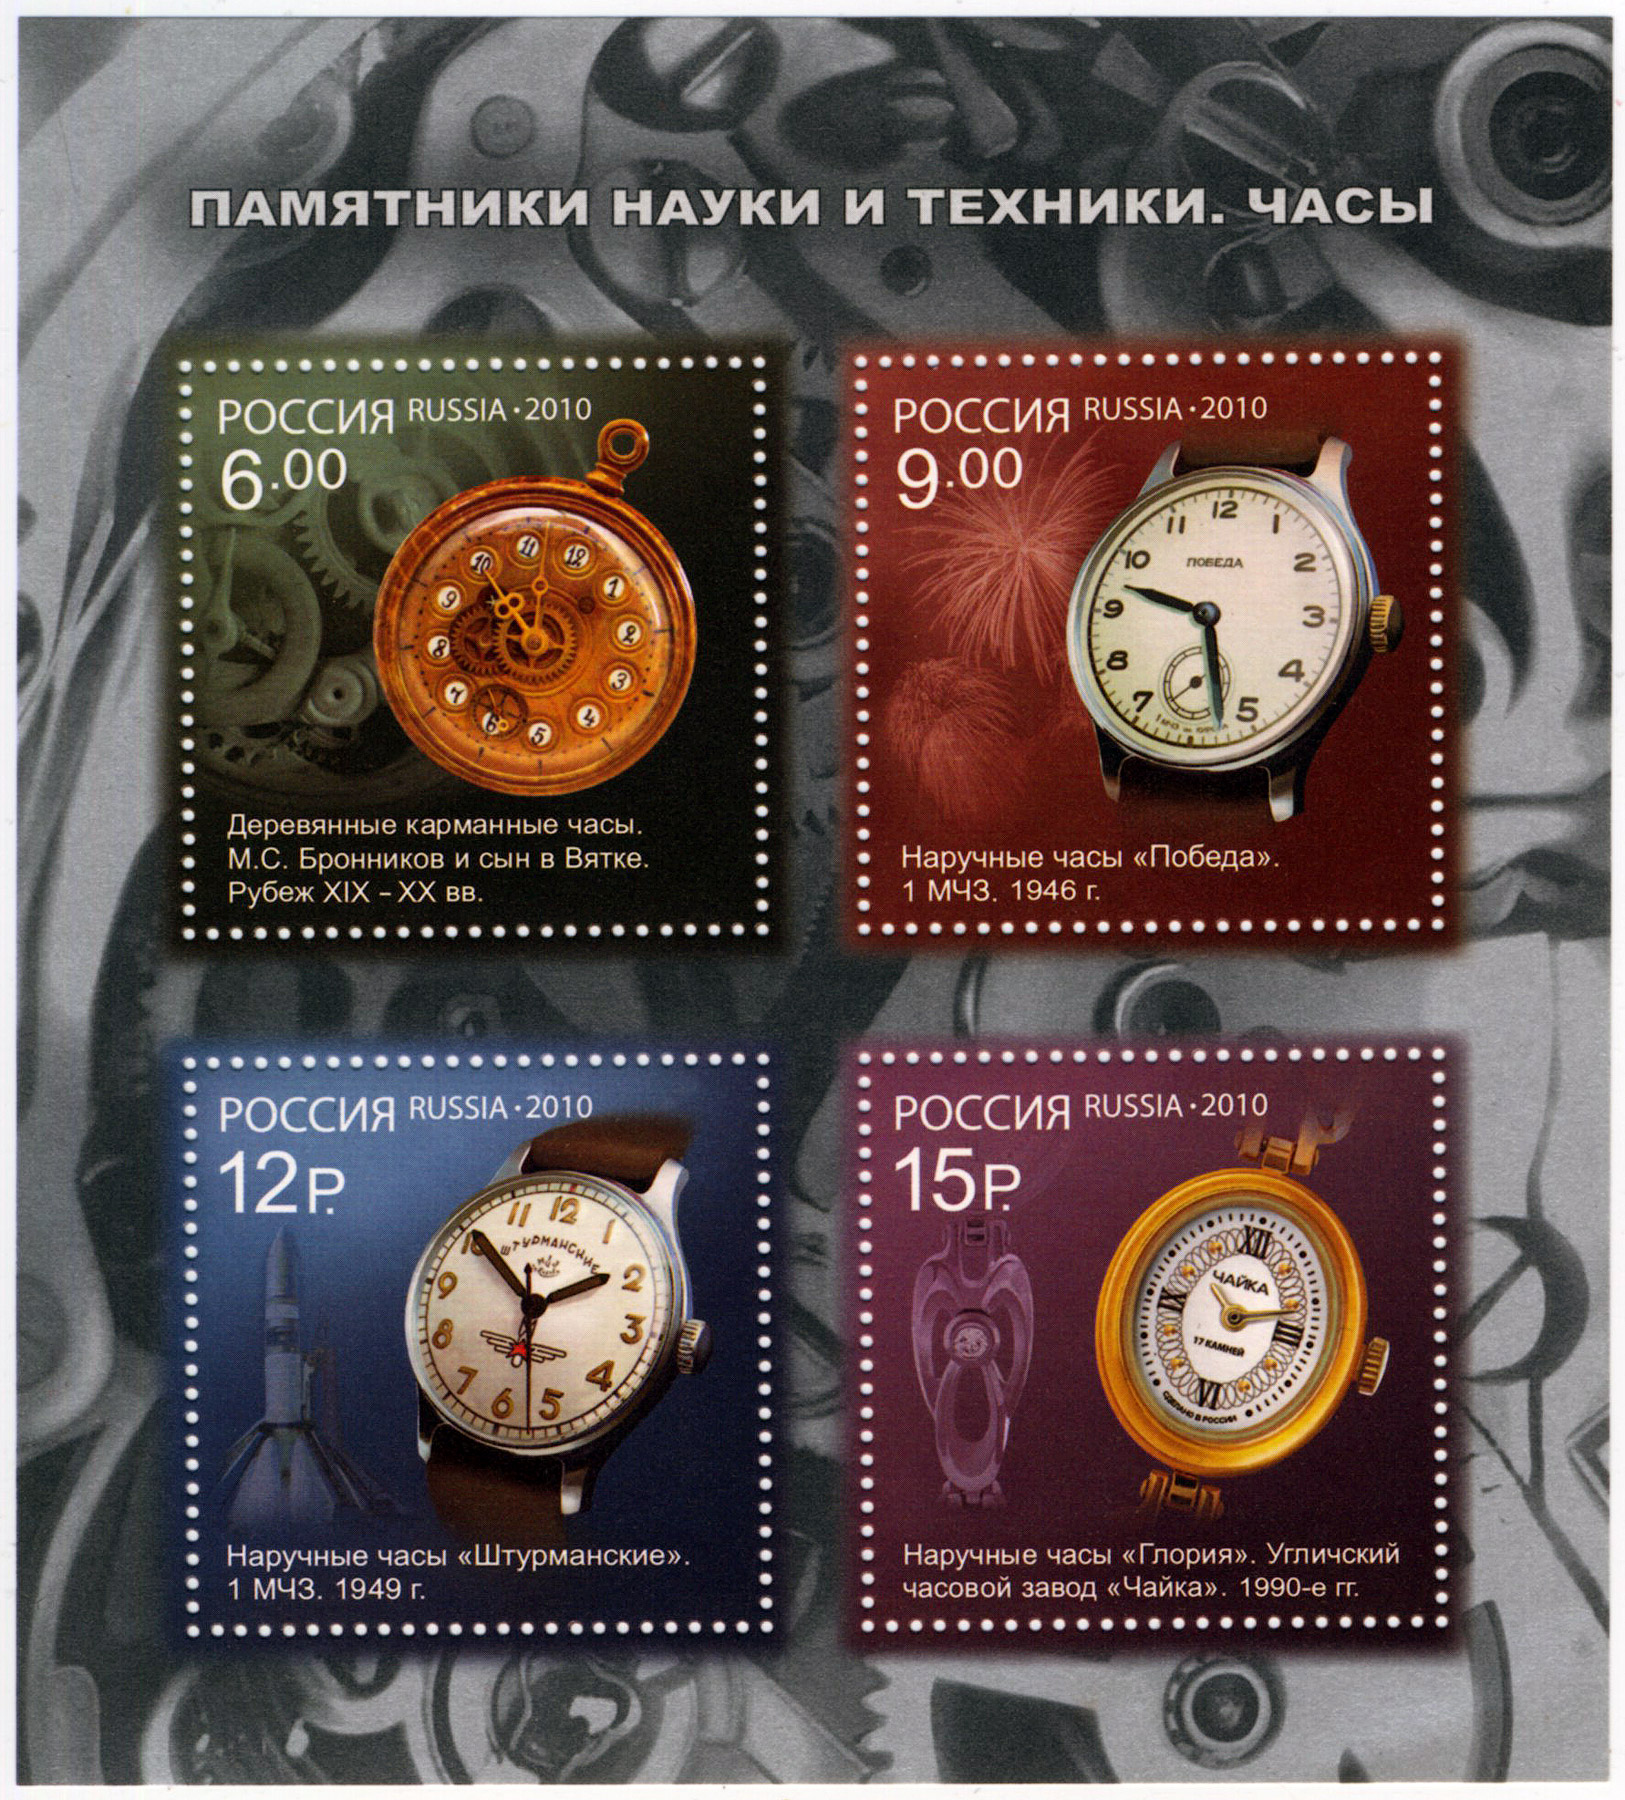 Russian Watch Stamps 2010 Russische Uhren Briefmarken